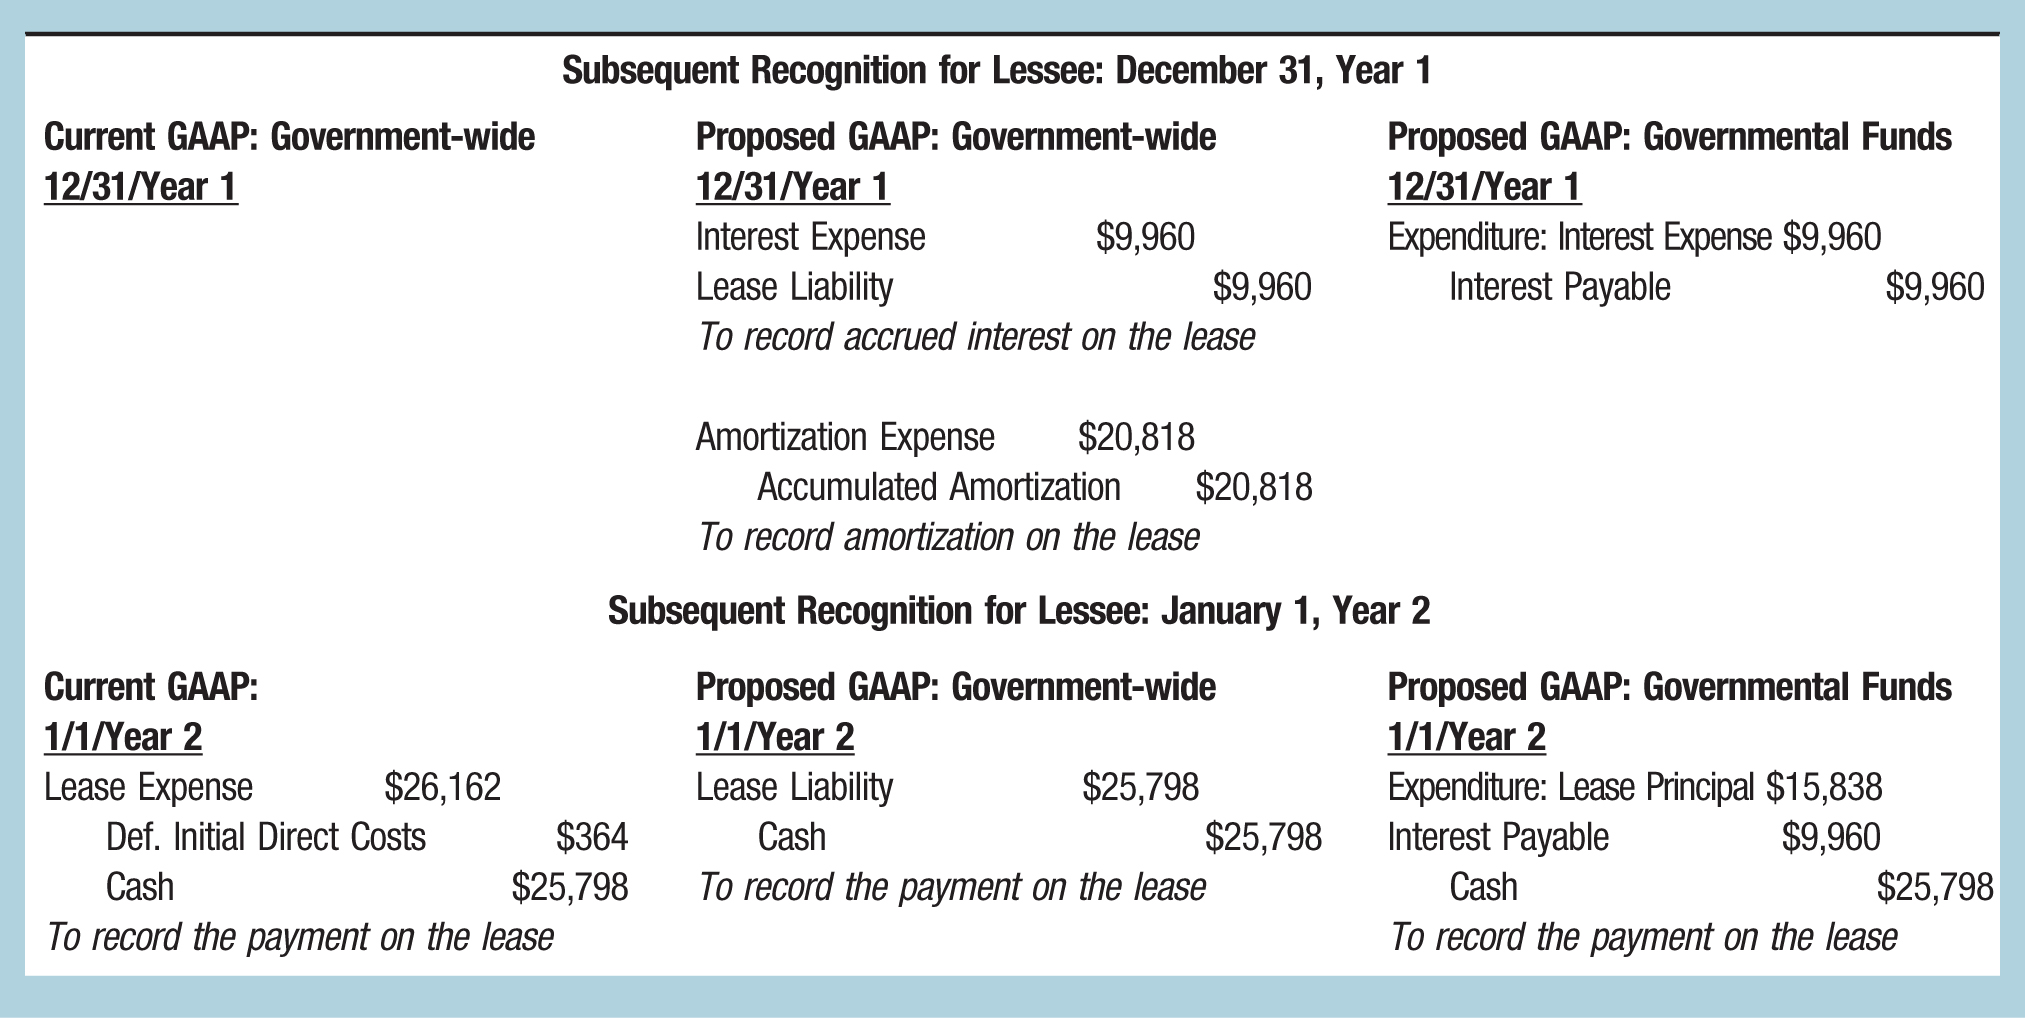 Subsequent Recognition for Lessee: December 31, Year 1 Current GAAP: Government-wide; Proposed GAAP: Government-wide; Proposed GAAP: Governmental Funds 12/31/Year 1; 12/31/Year 1; 12/31/Year 1 Interest Expense; $9,960; Expenditure: Interest Expense $9,960 Lease Liability; $9,960; Interest Payable; $9,960 To record accrued interest on the lease Amortization Expense; $20,818 Accumulated Amortization; $20,818 To record amortization on the lease Subsequent Recognition for Lessee: January 1, Year 2 Current GAAP:; Proposed GAAP: Government-wide; Proposed GAAP: Governmental Funds 1/1/Year 2; 1/1/Year 2; 1/1/Year 2 Lease Expense; $26,162; Lease Liability; $25,798; Expenditure: Lease Principal $15,838 Def. Initial Direct Costs; $364; Cash; $25,798; Interest Payable; $9,960 Cash; $25,798; To record the payment on the lease; Cash; $25,798 To record the payment on the lease; To record the payment on the lease